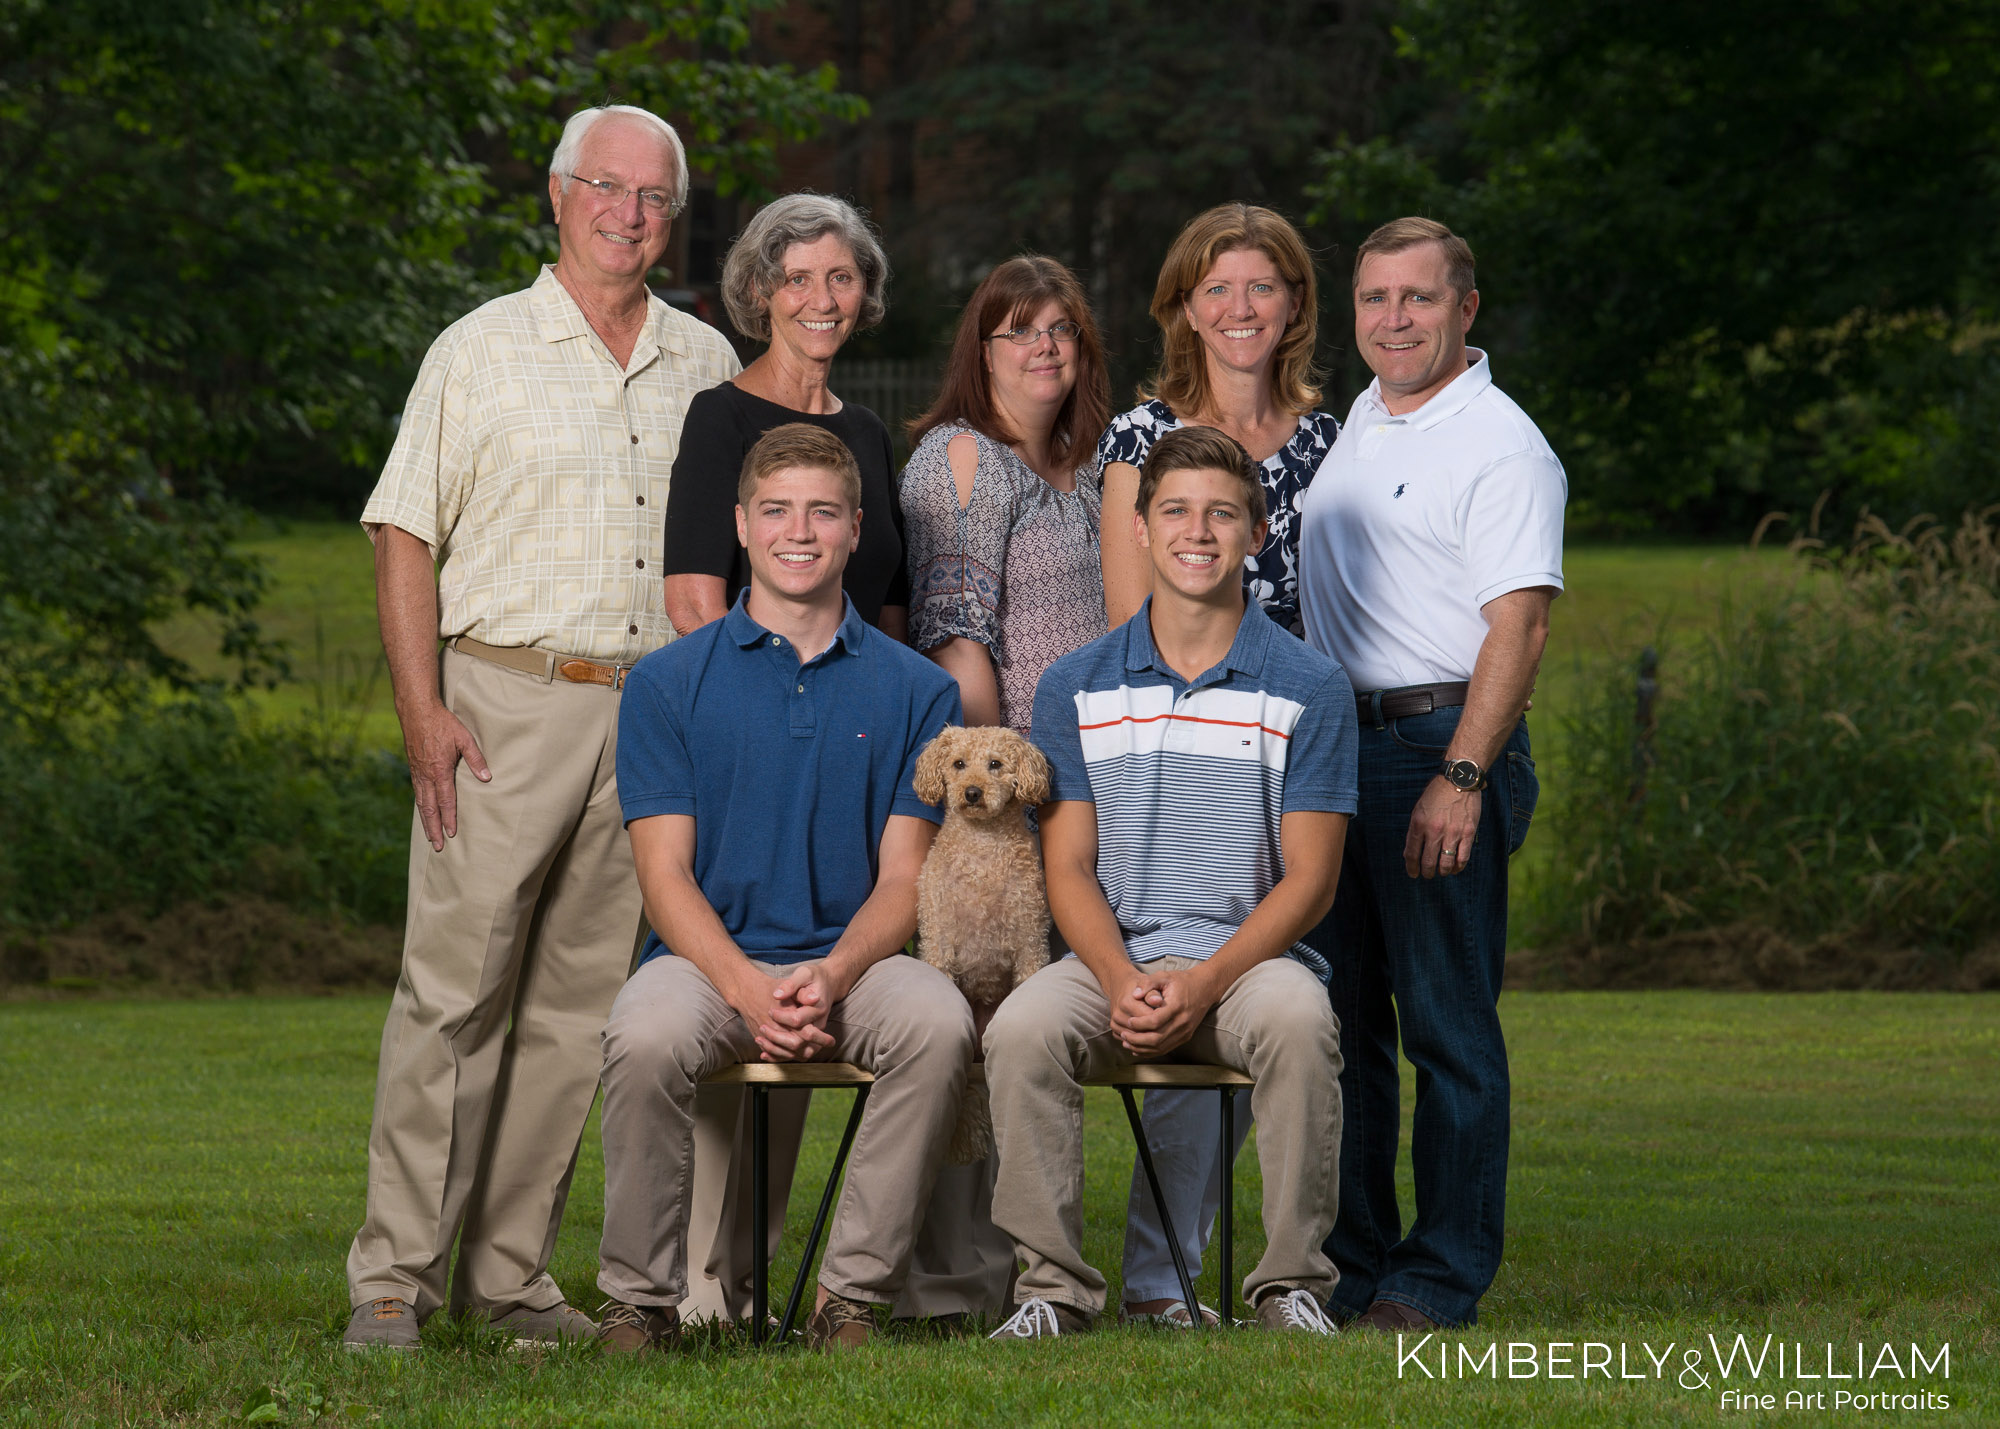 Kimberly and William Family Portrait New Hampshire 2440.jpg